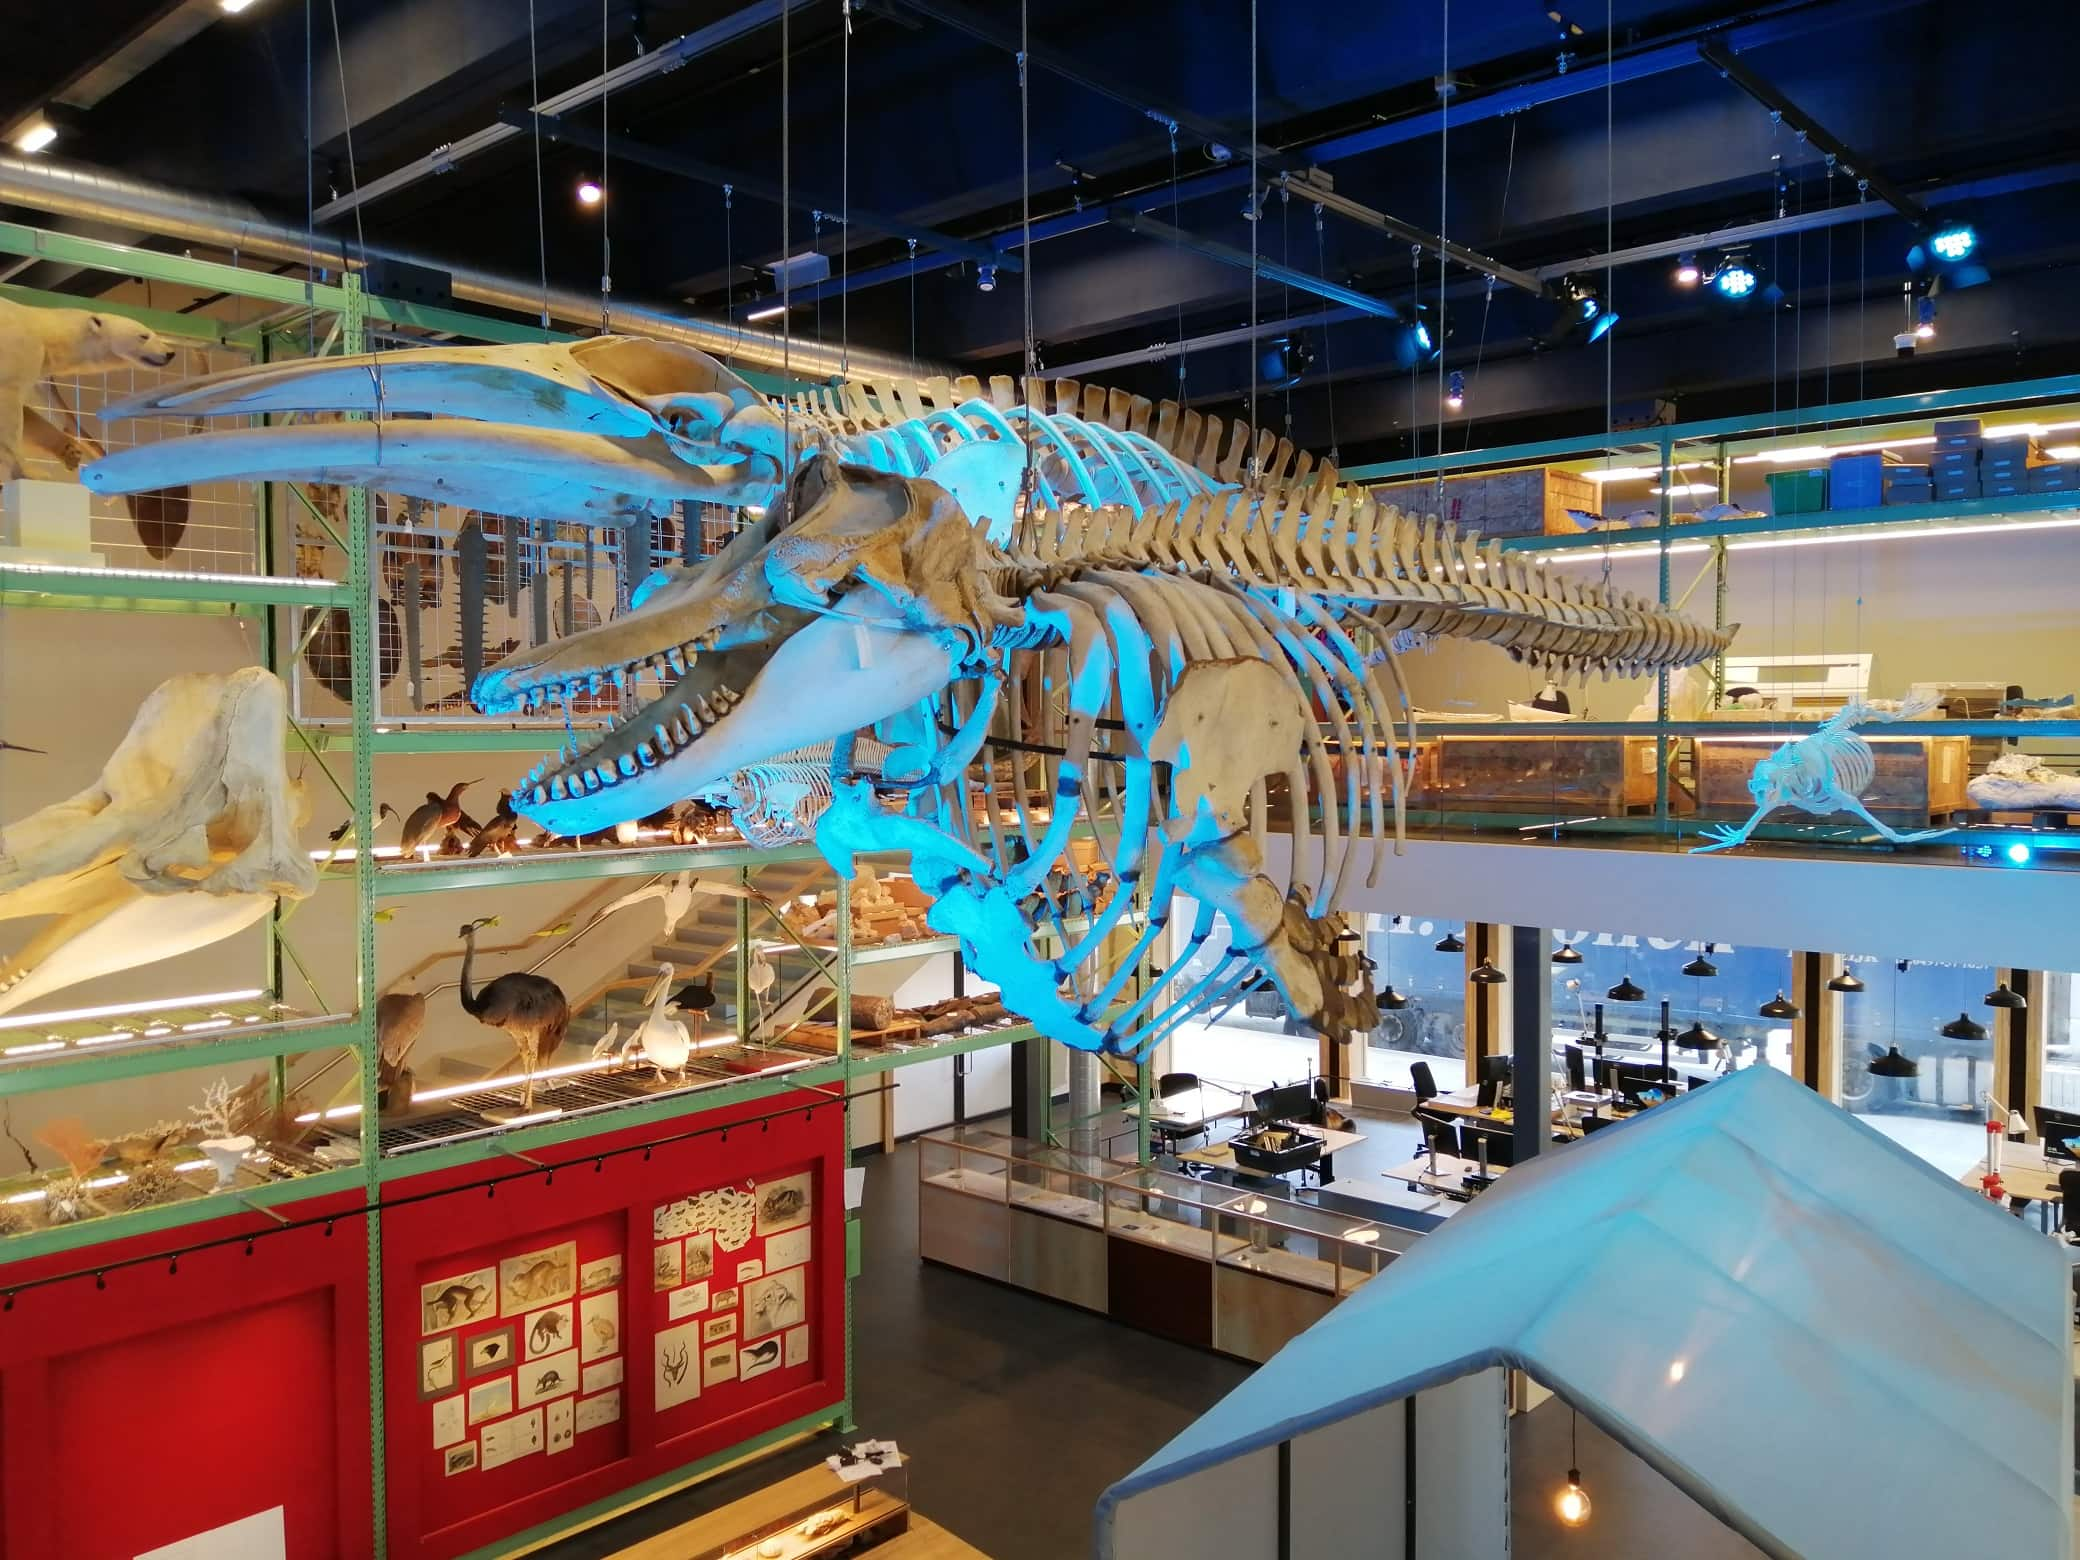 Skeletten | oplevering skelet Orca en Noordse vinvis | Live Science - Naturalis Biodiversity Center